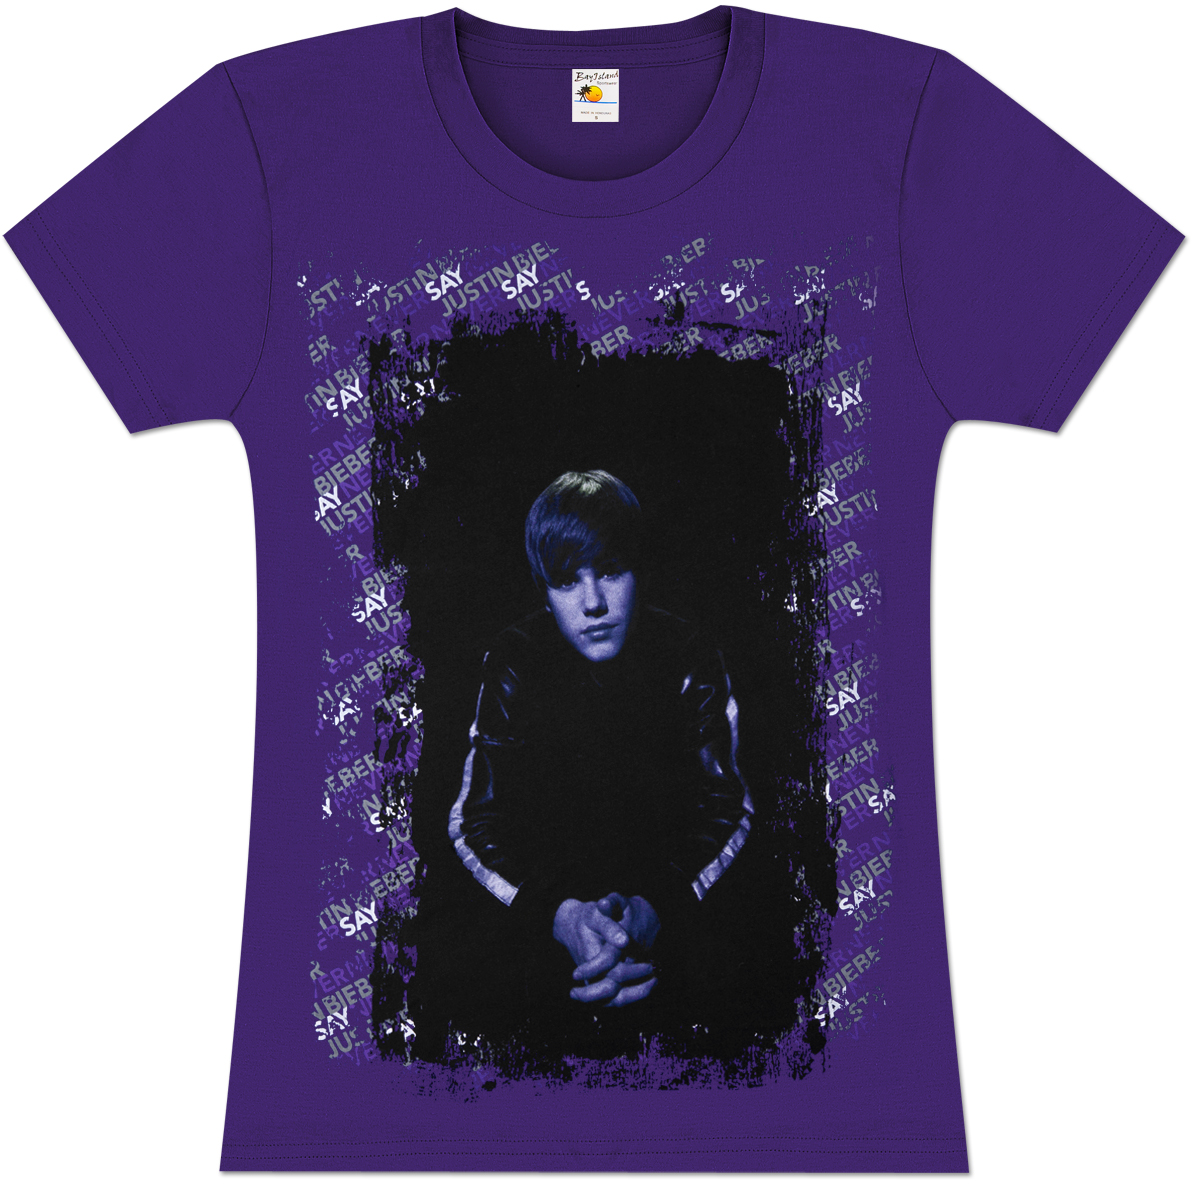 style or fashion world dark purple justin bieber t shirt. Black Bedroom Furniture Sets. Home Design Ideas